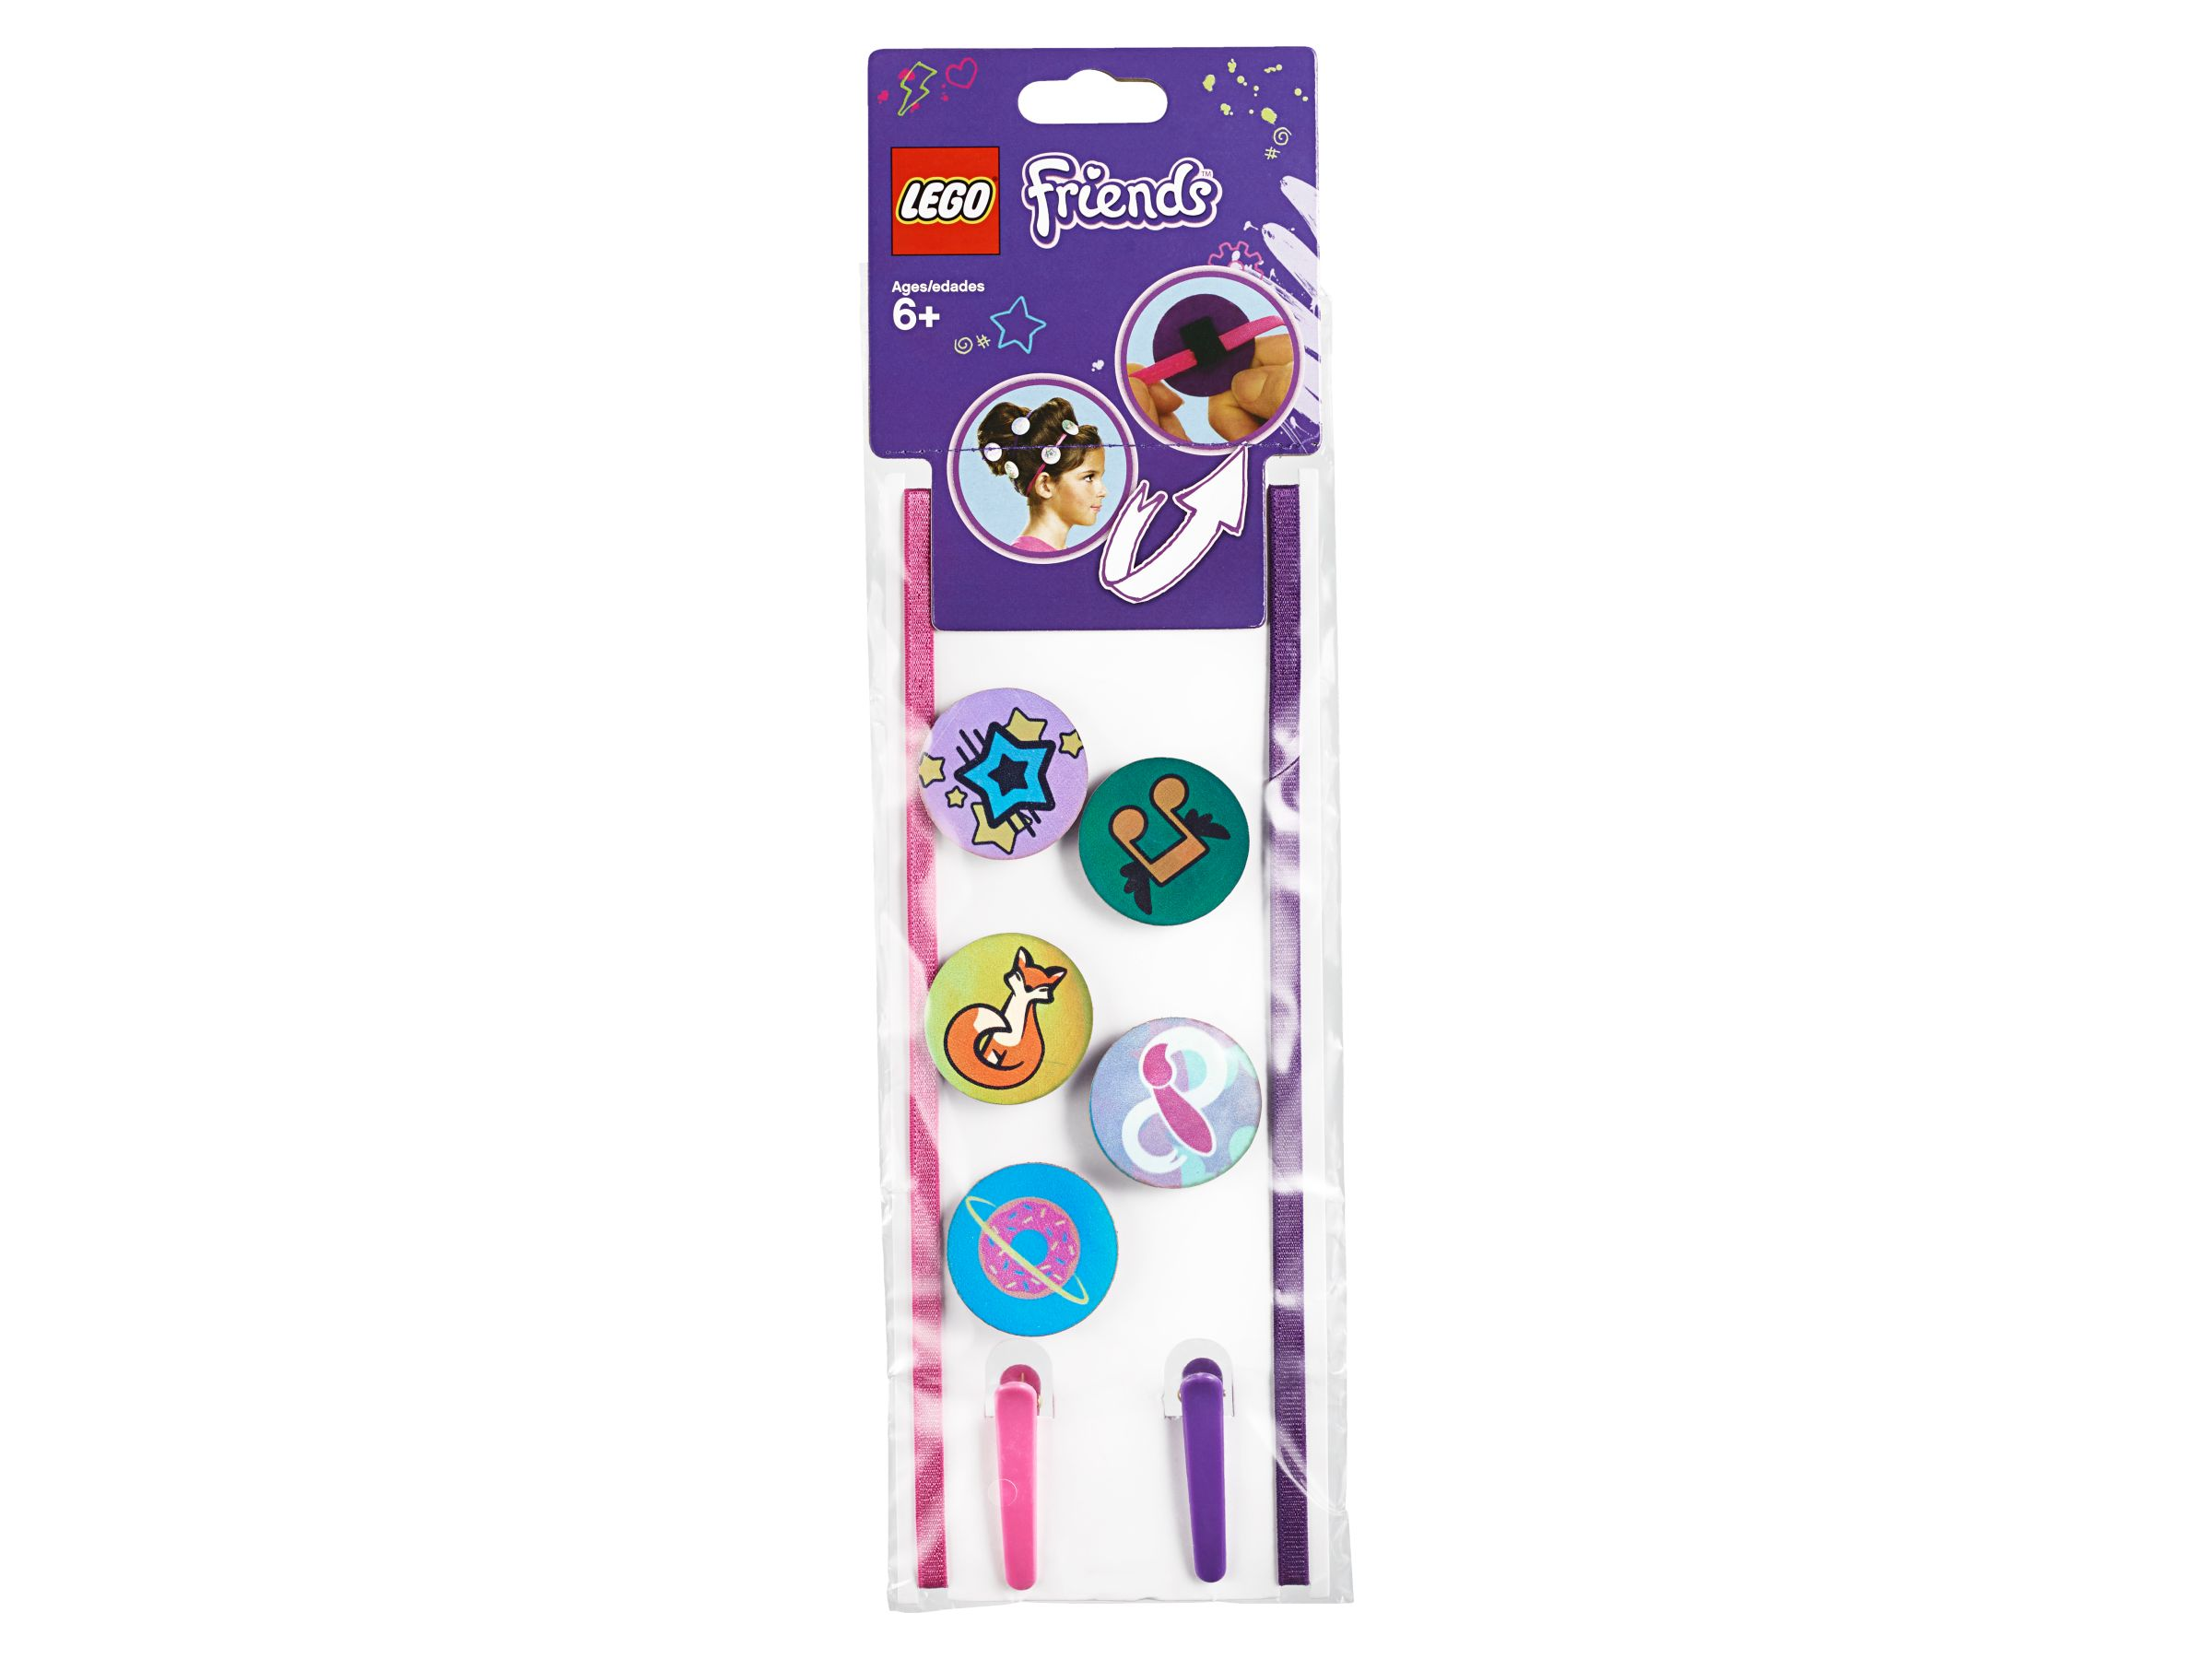 LEGO Gear 853892 Friends Hair Accessory Set LEGO_853892_alt3.jpg